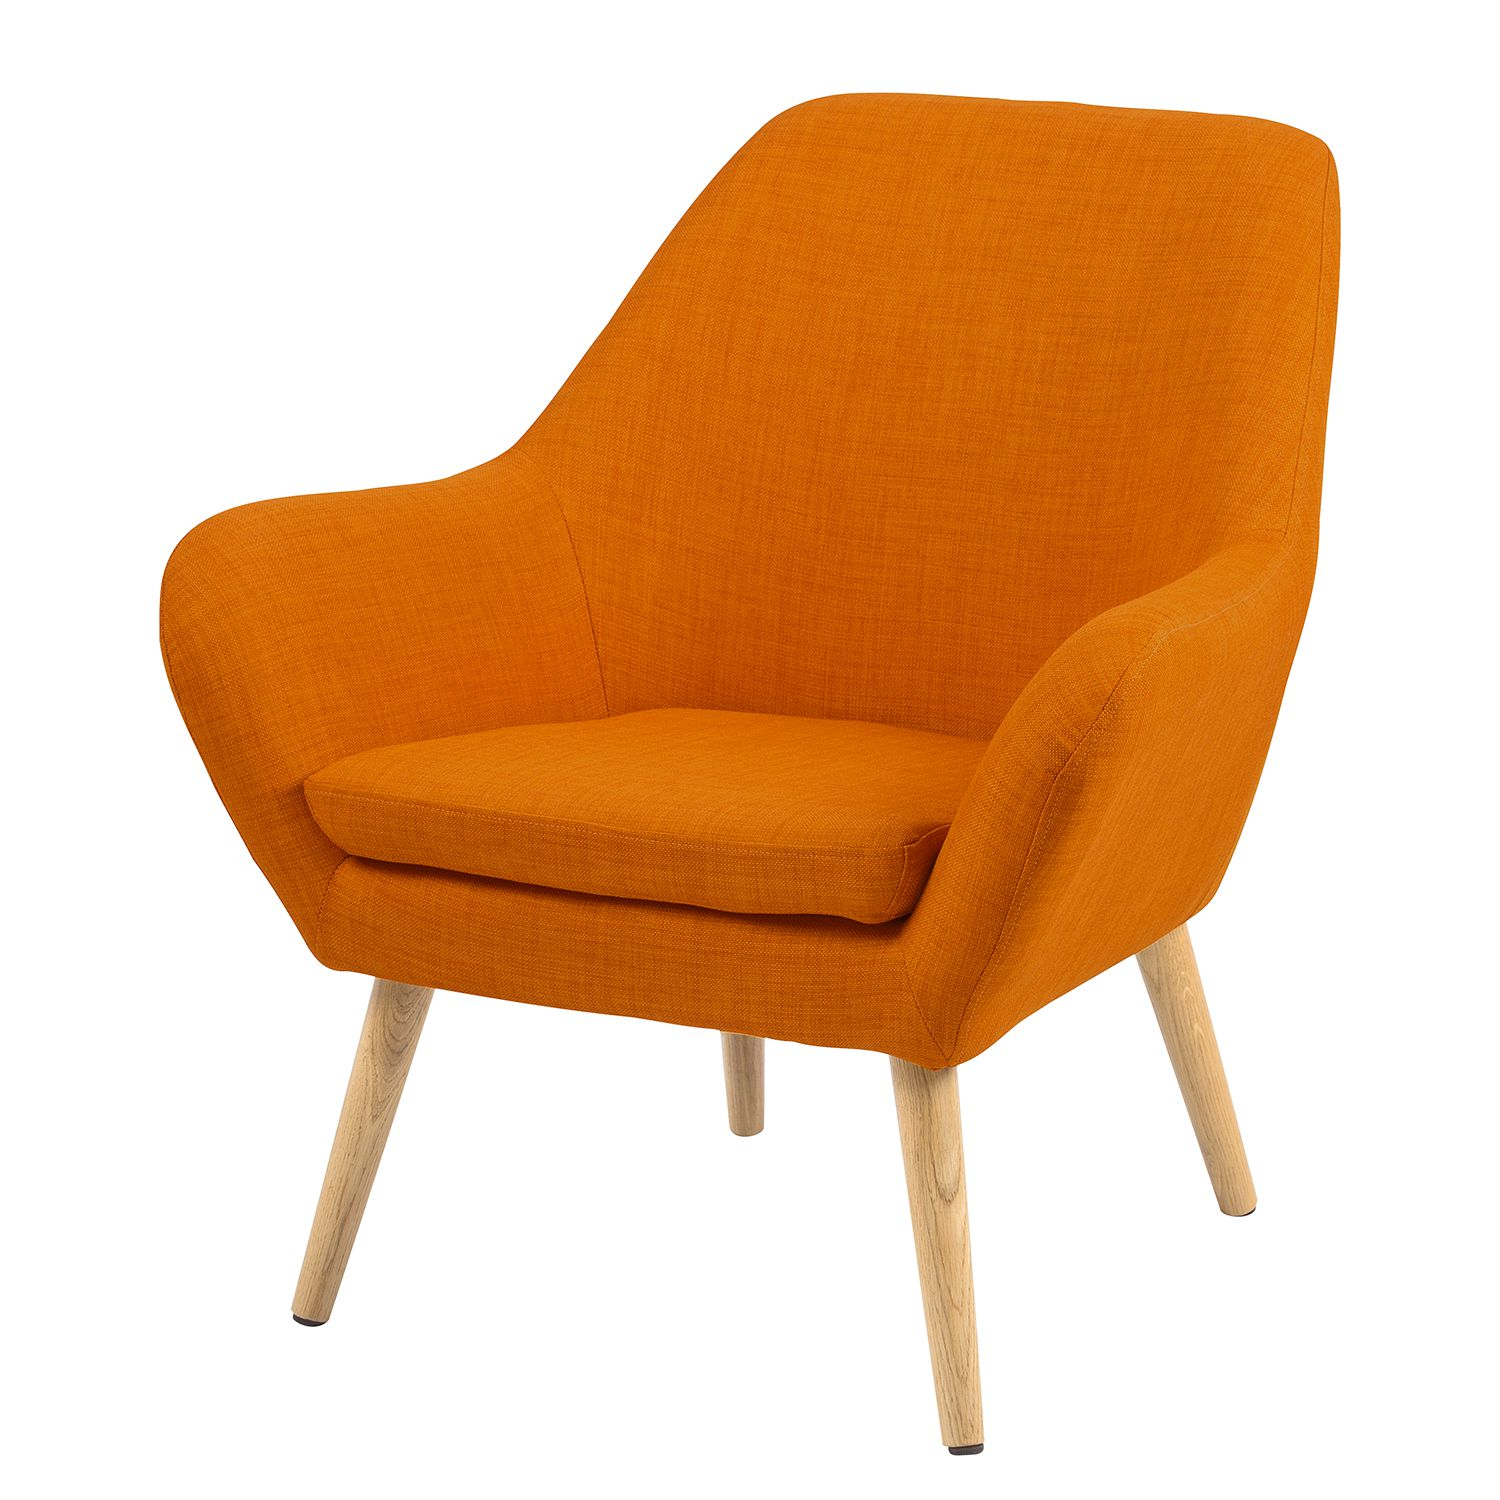 Sessel Jenks III - Webstoff - Orange, Norrwood